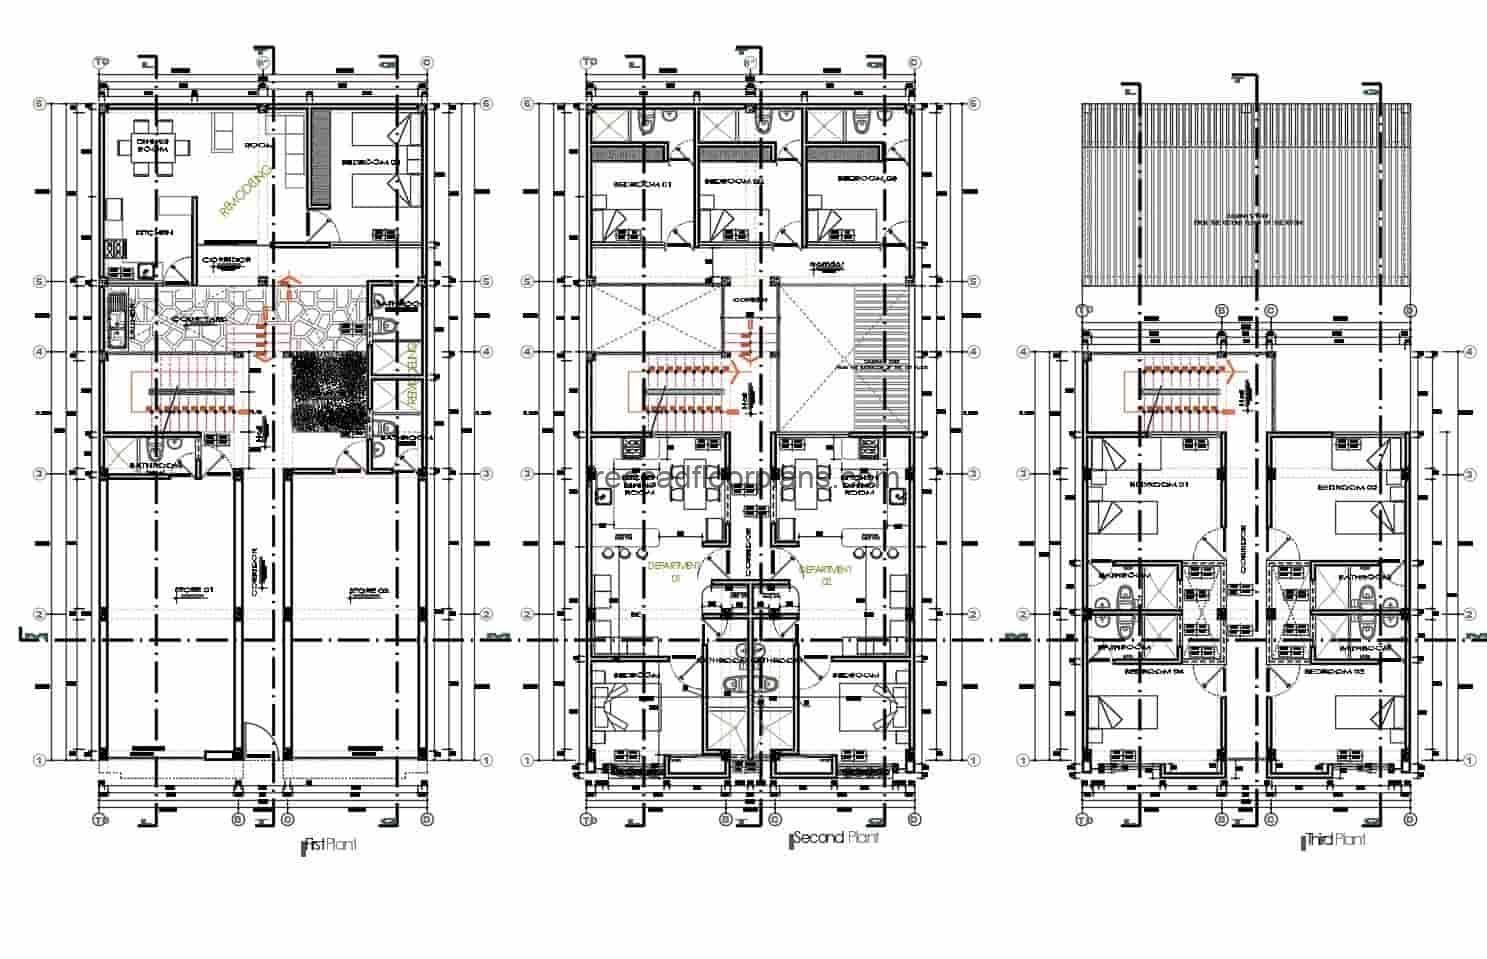 Complete commercial and residential building design, architectural plans, sizing and elevations for free download in Autocad DWG format.